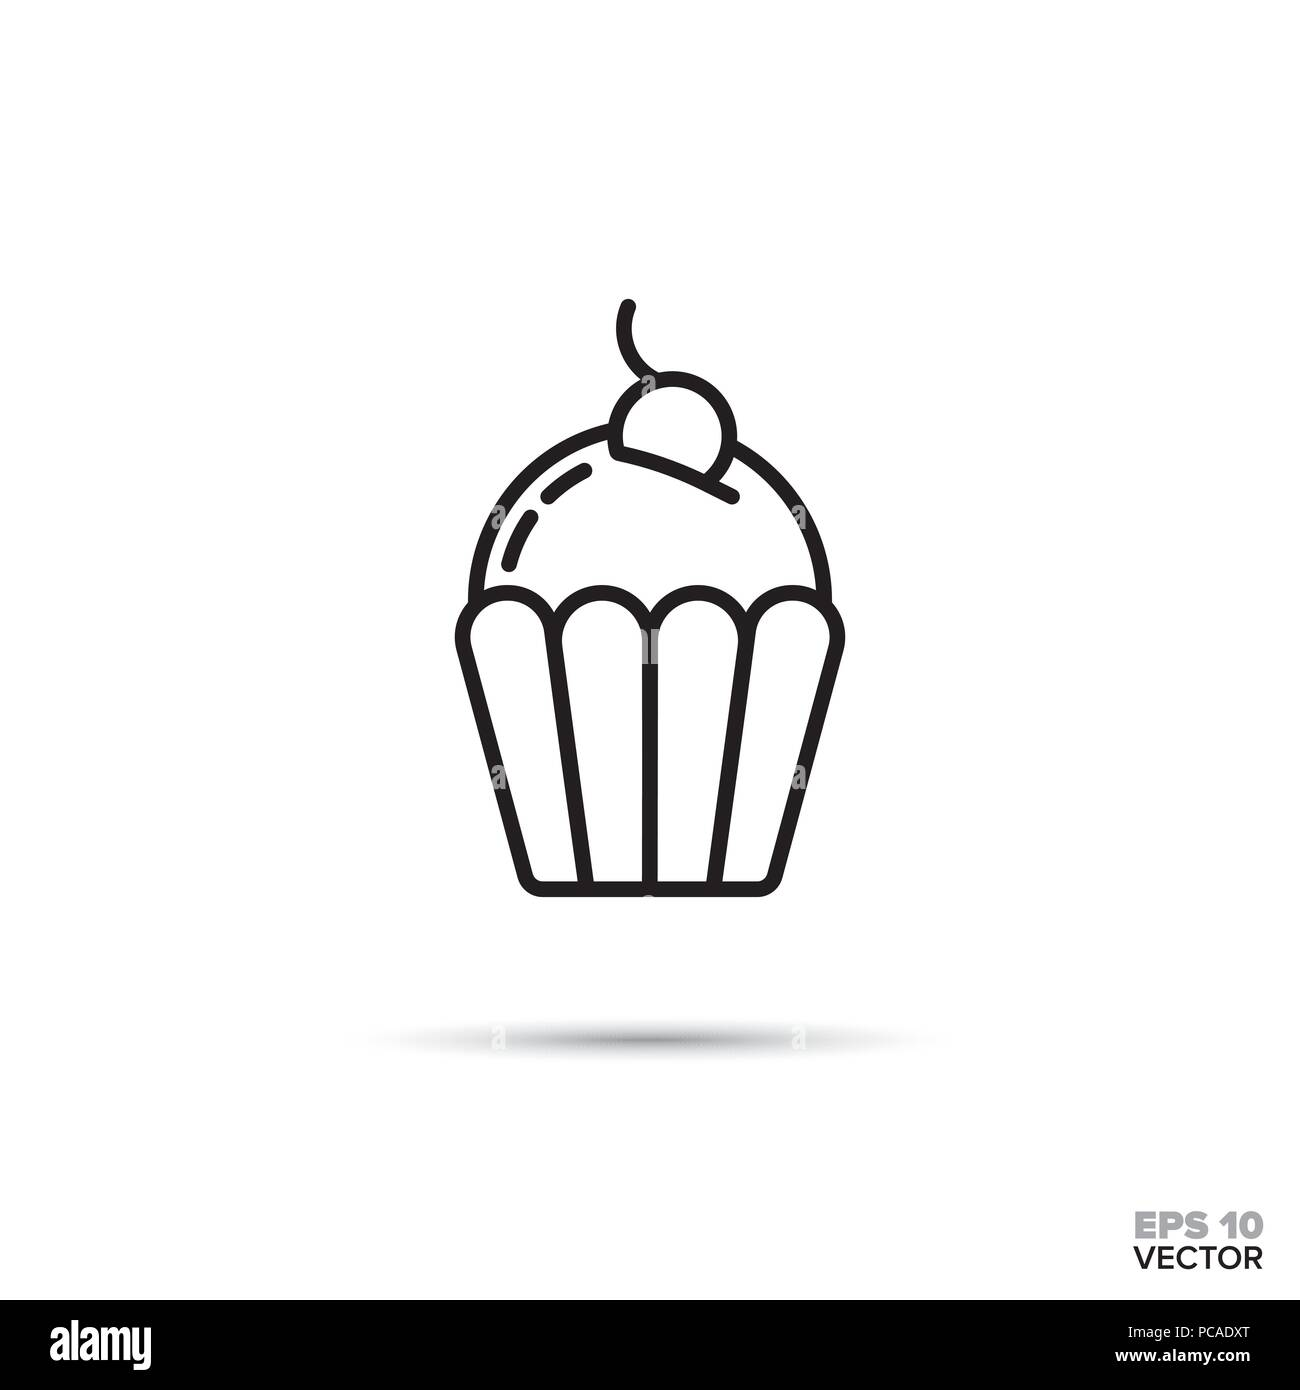 Cupcake With Cherry On Top Vector Line Icon Sweet Food Symbol Stock